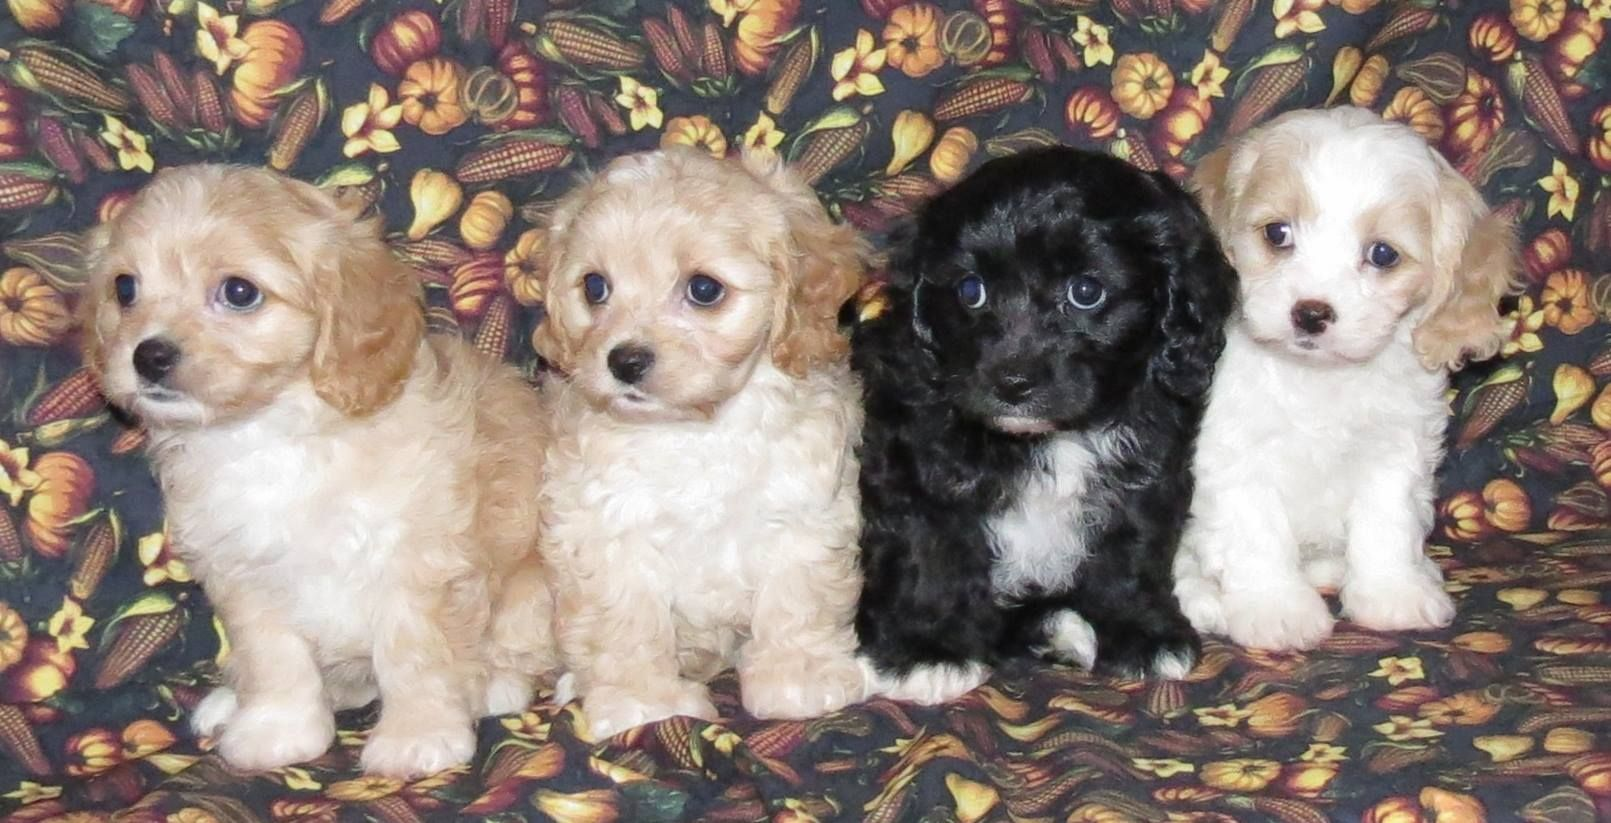 Cavachons From The Monarchy Offer Dog Breeders And Puppies For